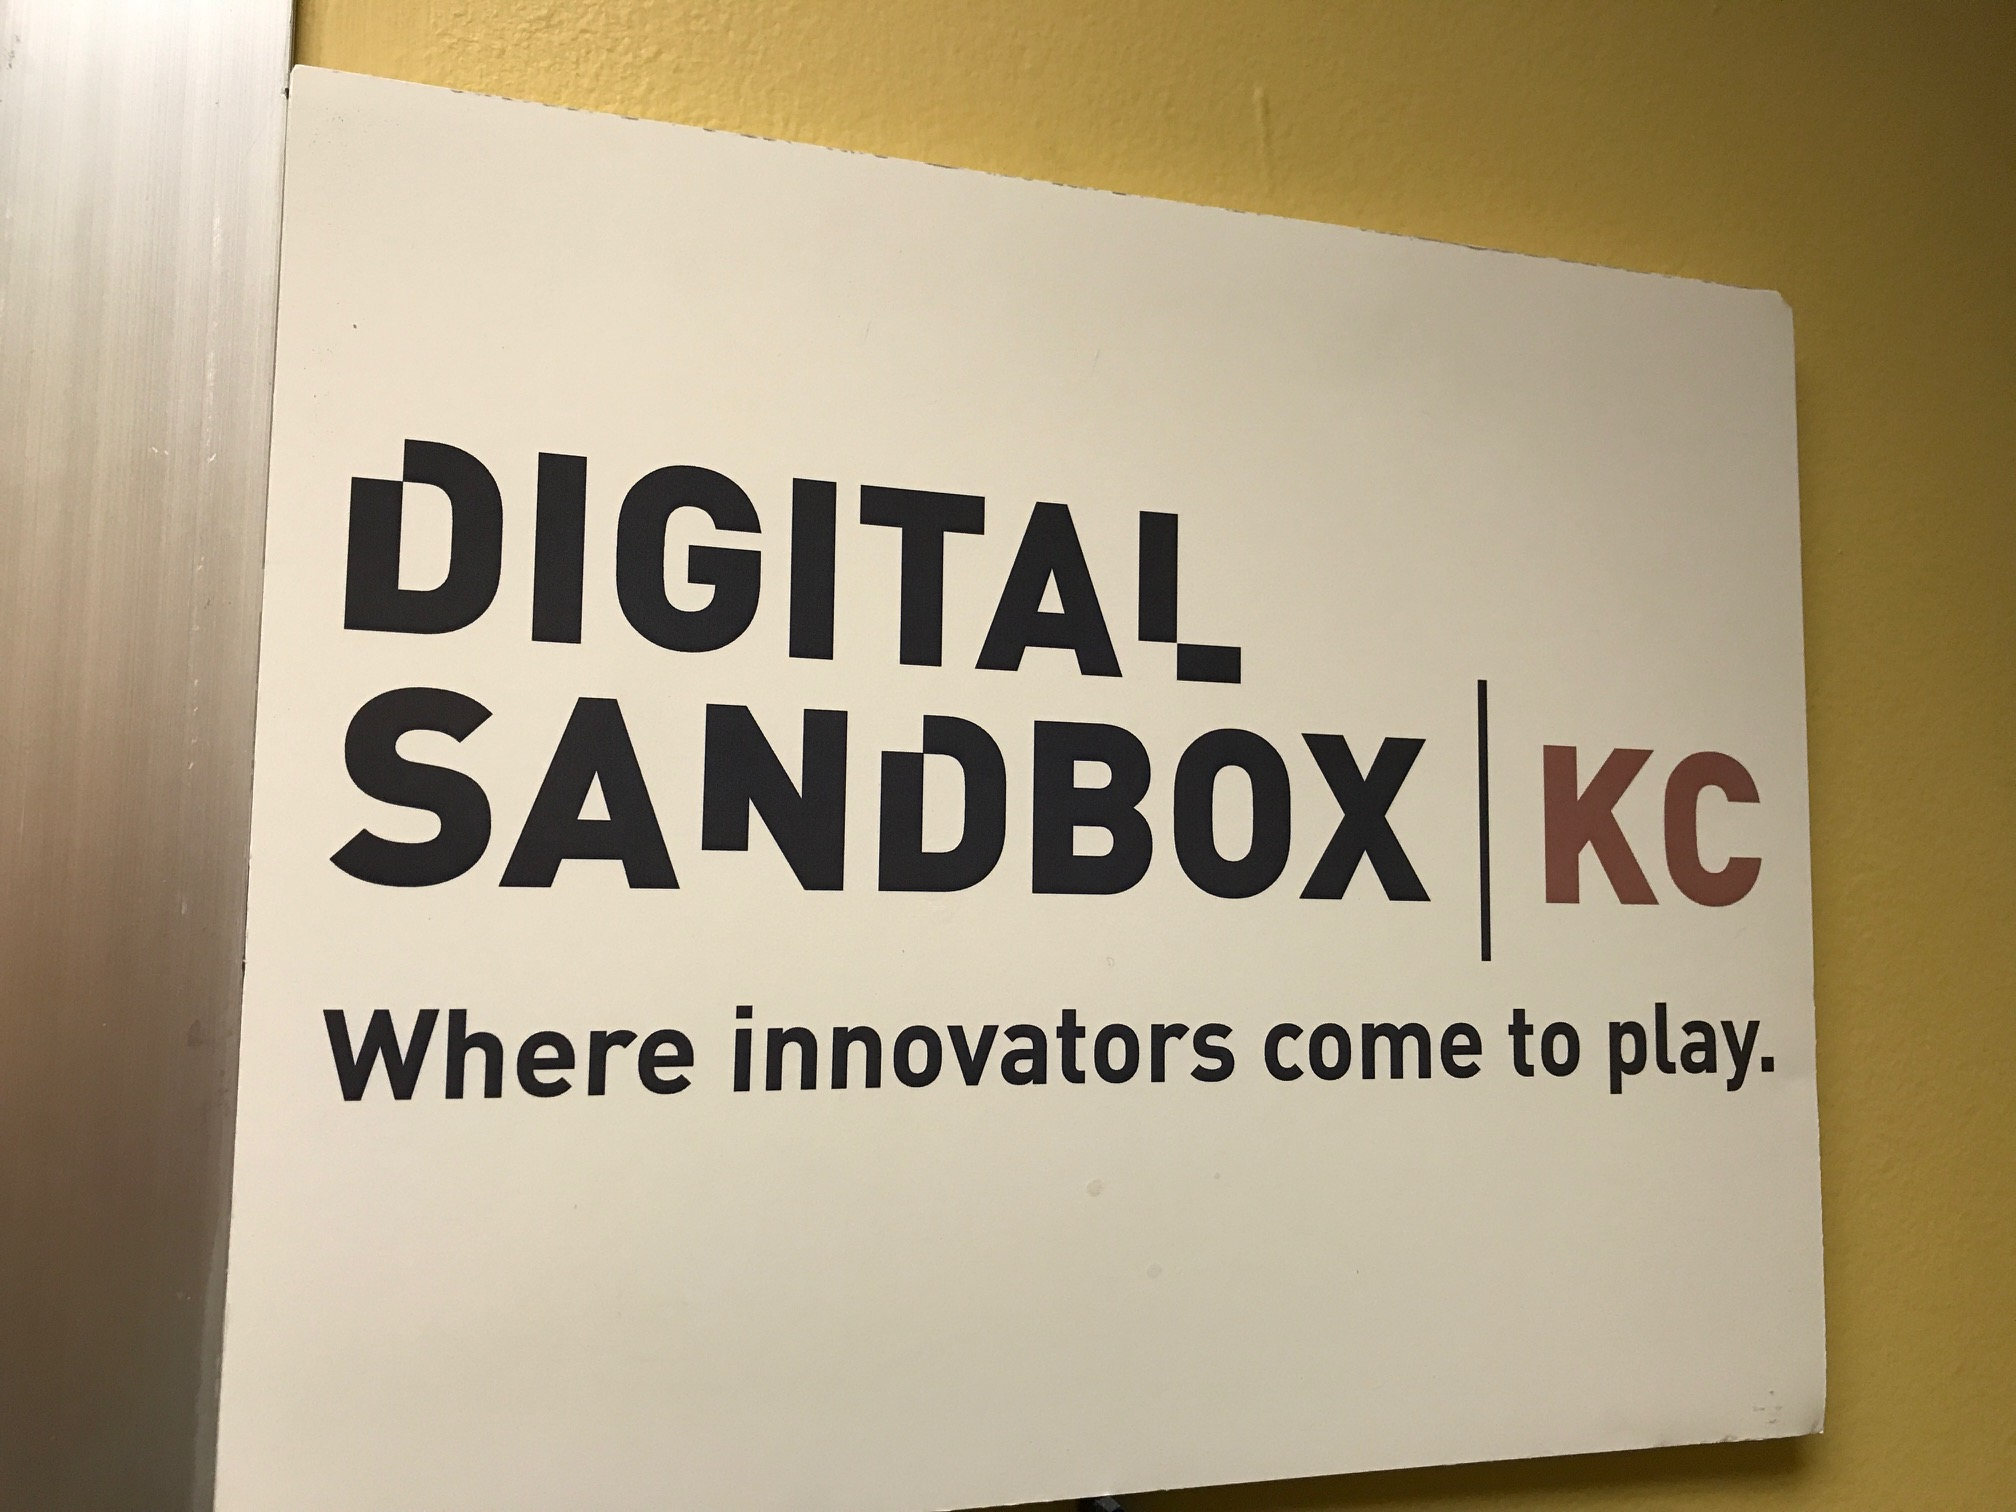 Digital Sandbox KC